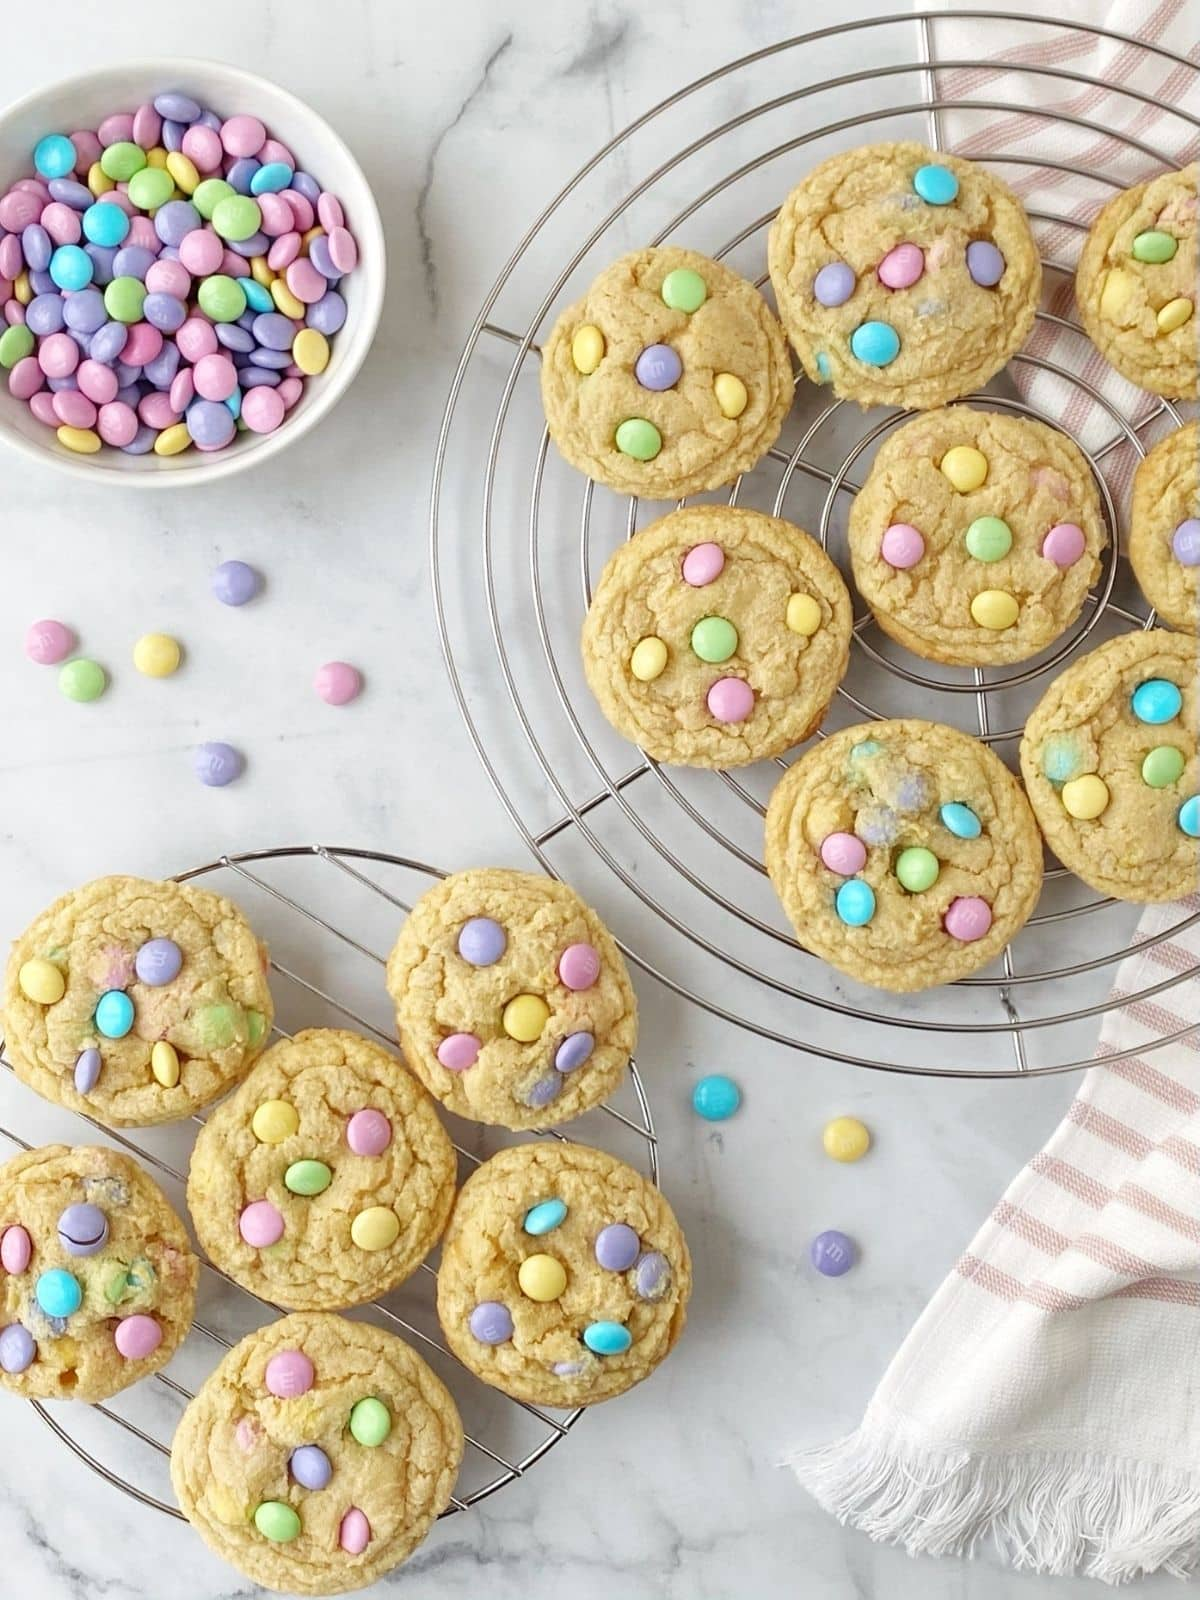 cookies on cooling racks with a bowl of M&M candies